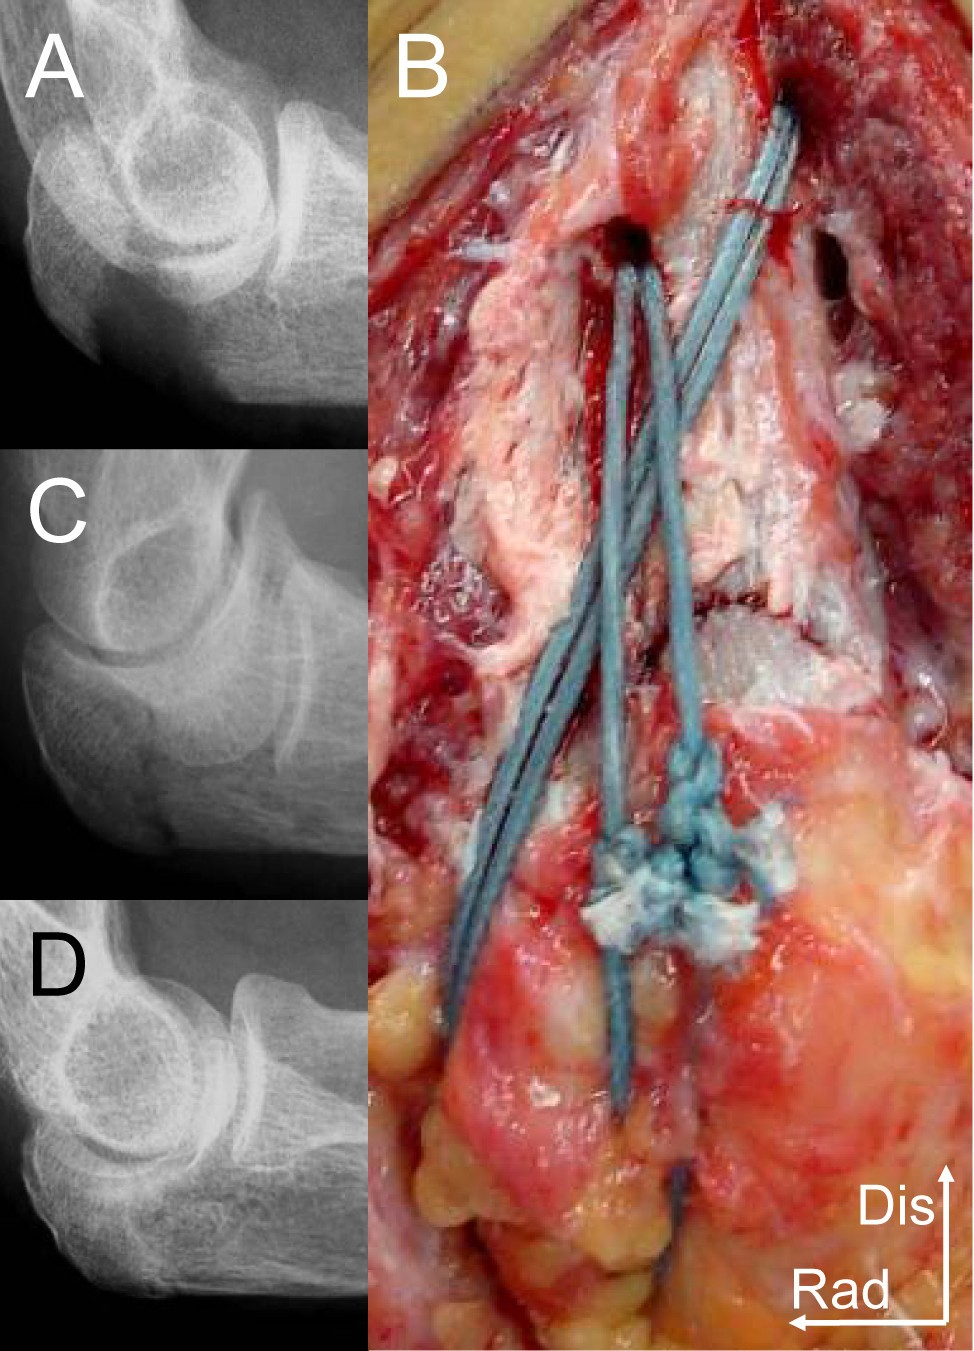 Repair Of Olecranon Fractures Using Fiberwire Without Metallic Tension Band Wiring Figure 1